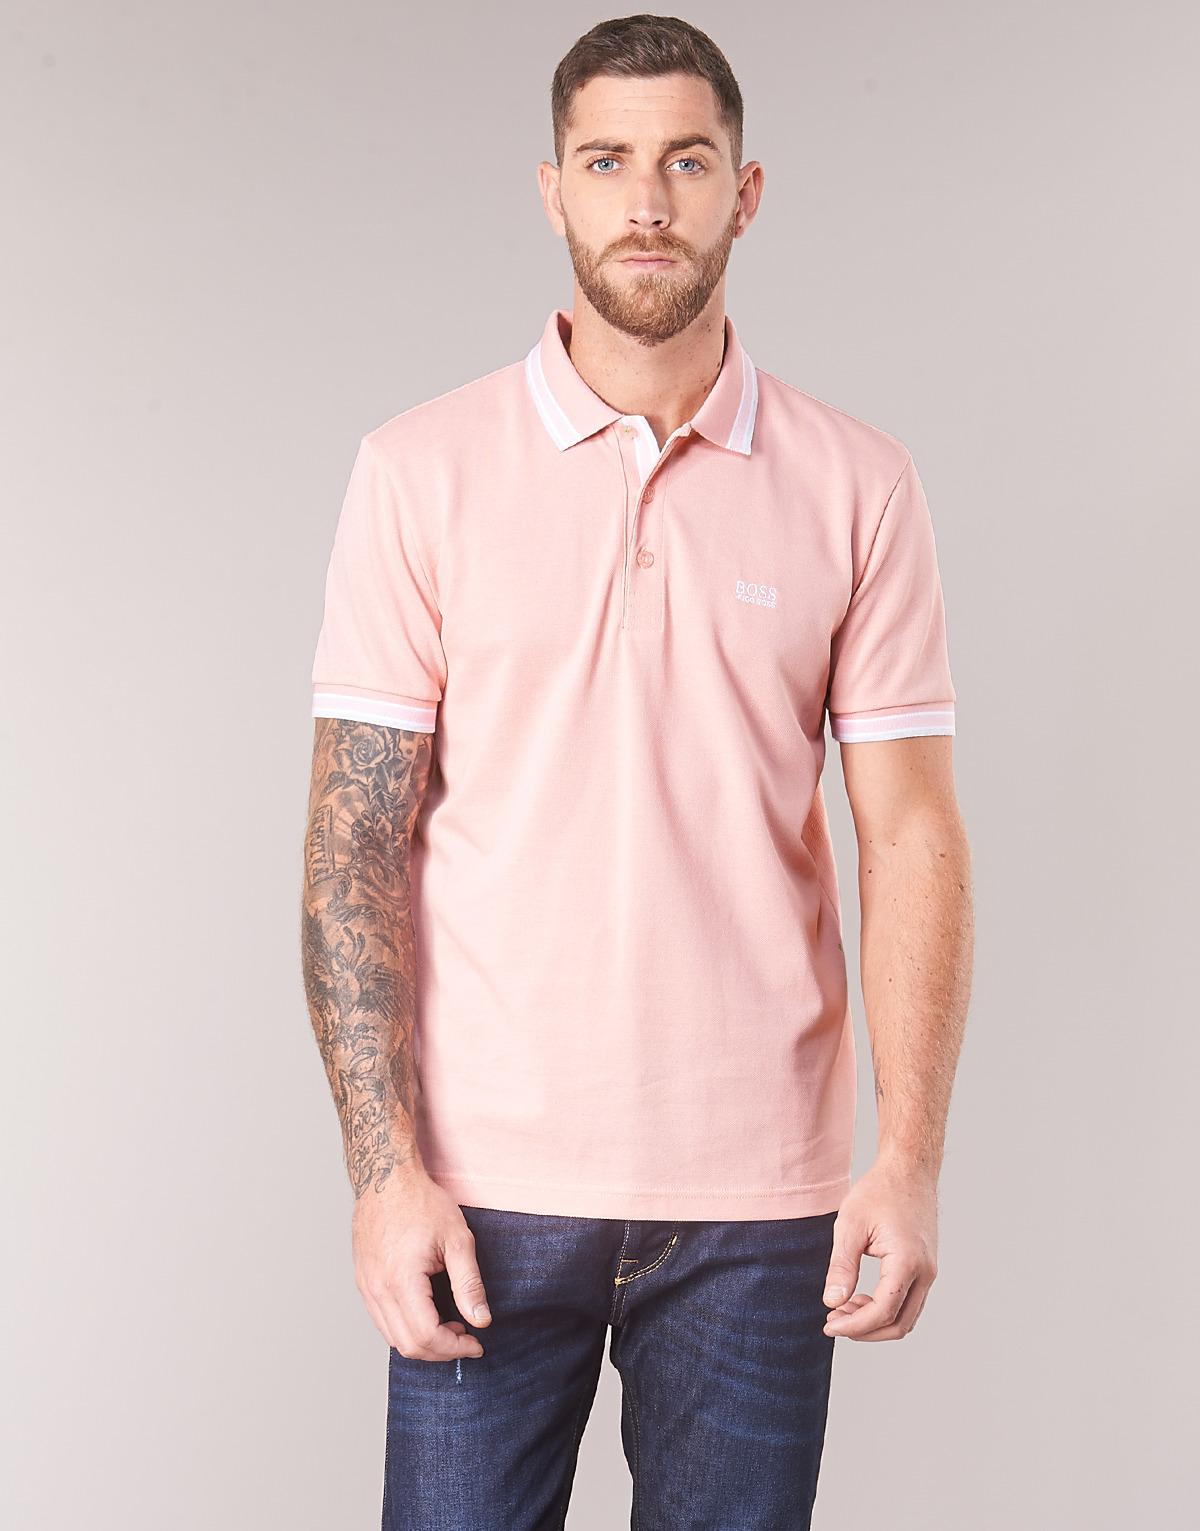 f7eda41c5 Boss Athleisure Paddy Men's Polo Shirt In Pink in Pink for Men - Lyst